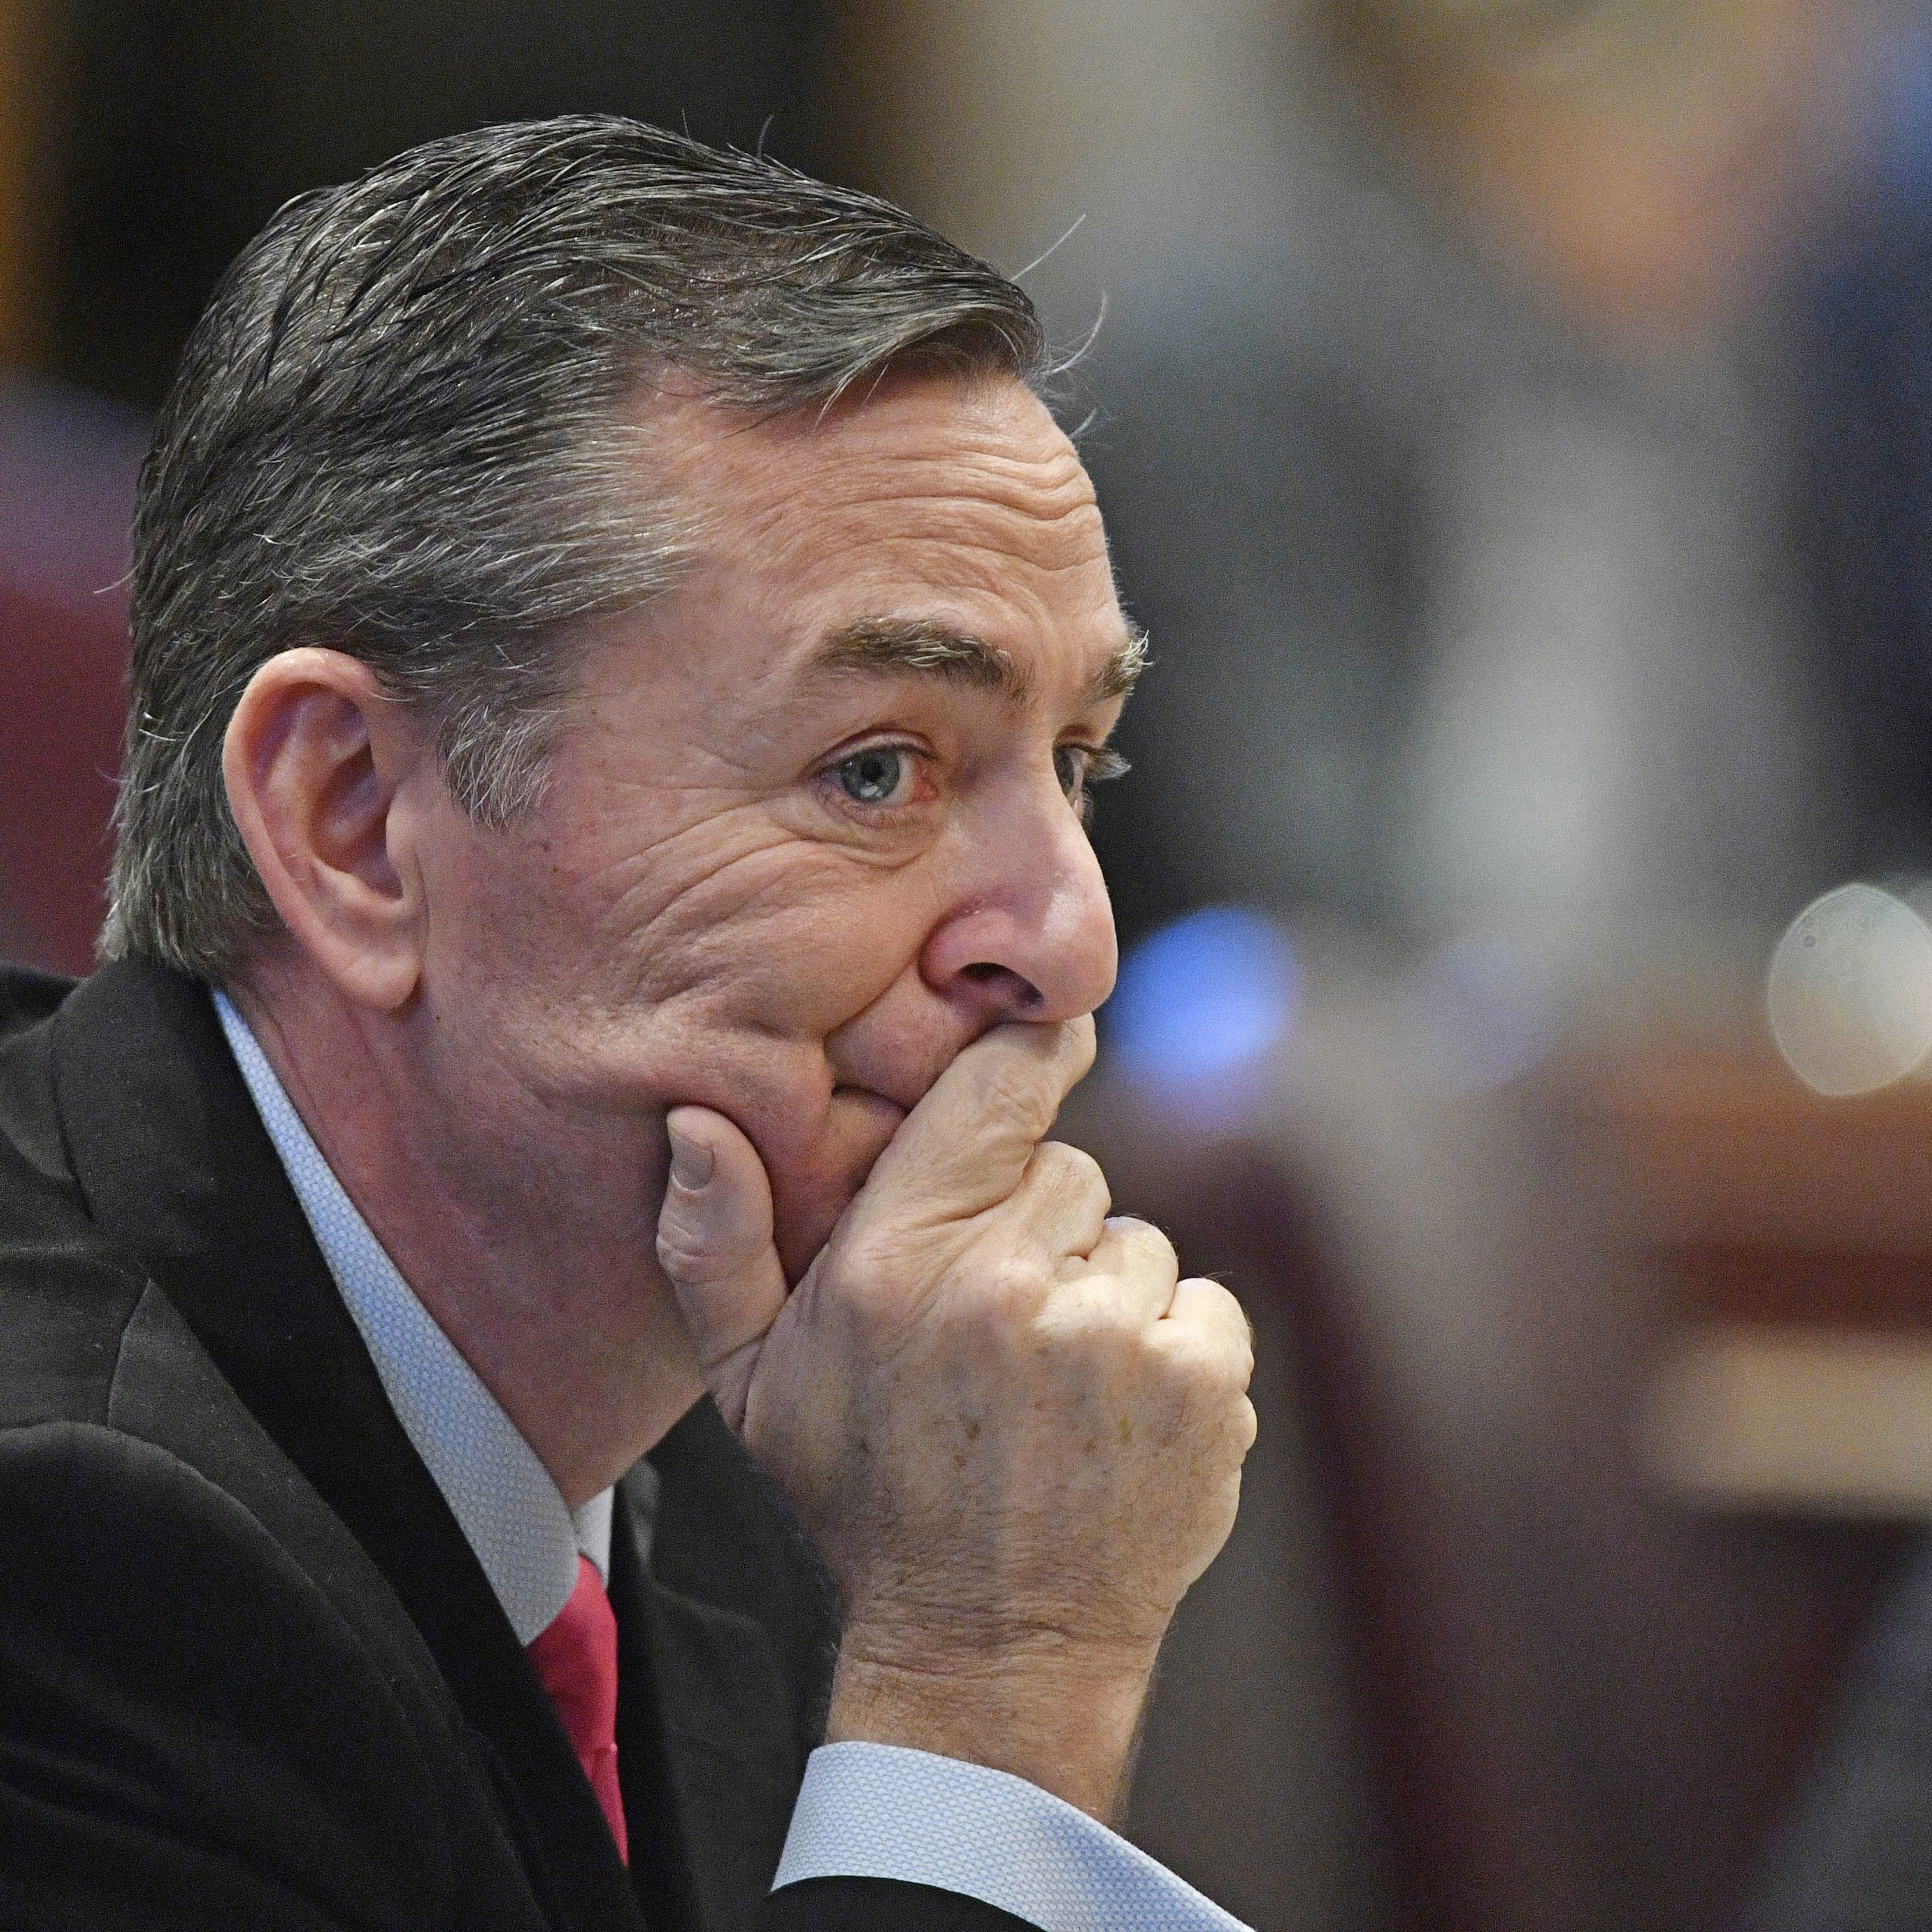 House Speaker Glen Casada resigns from job at pharmaceutical company Merck